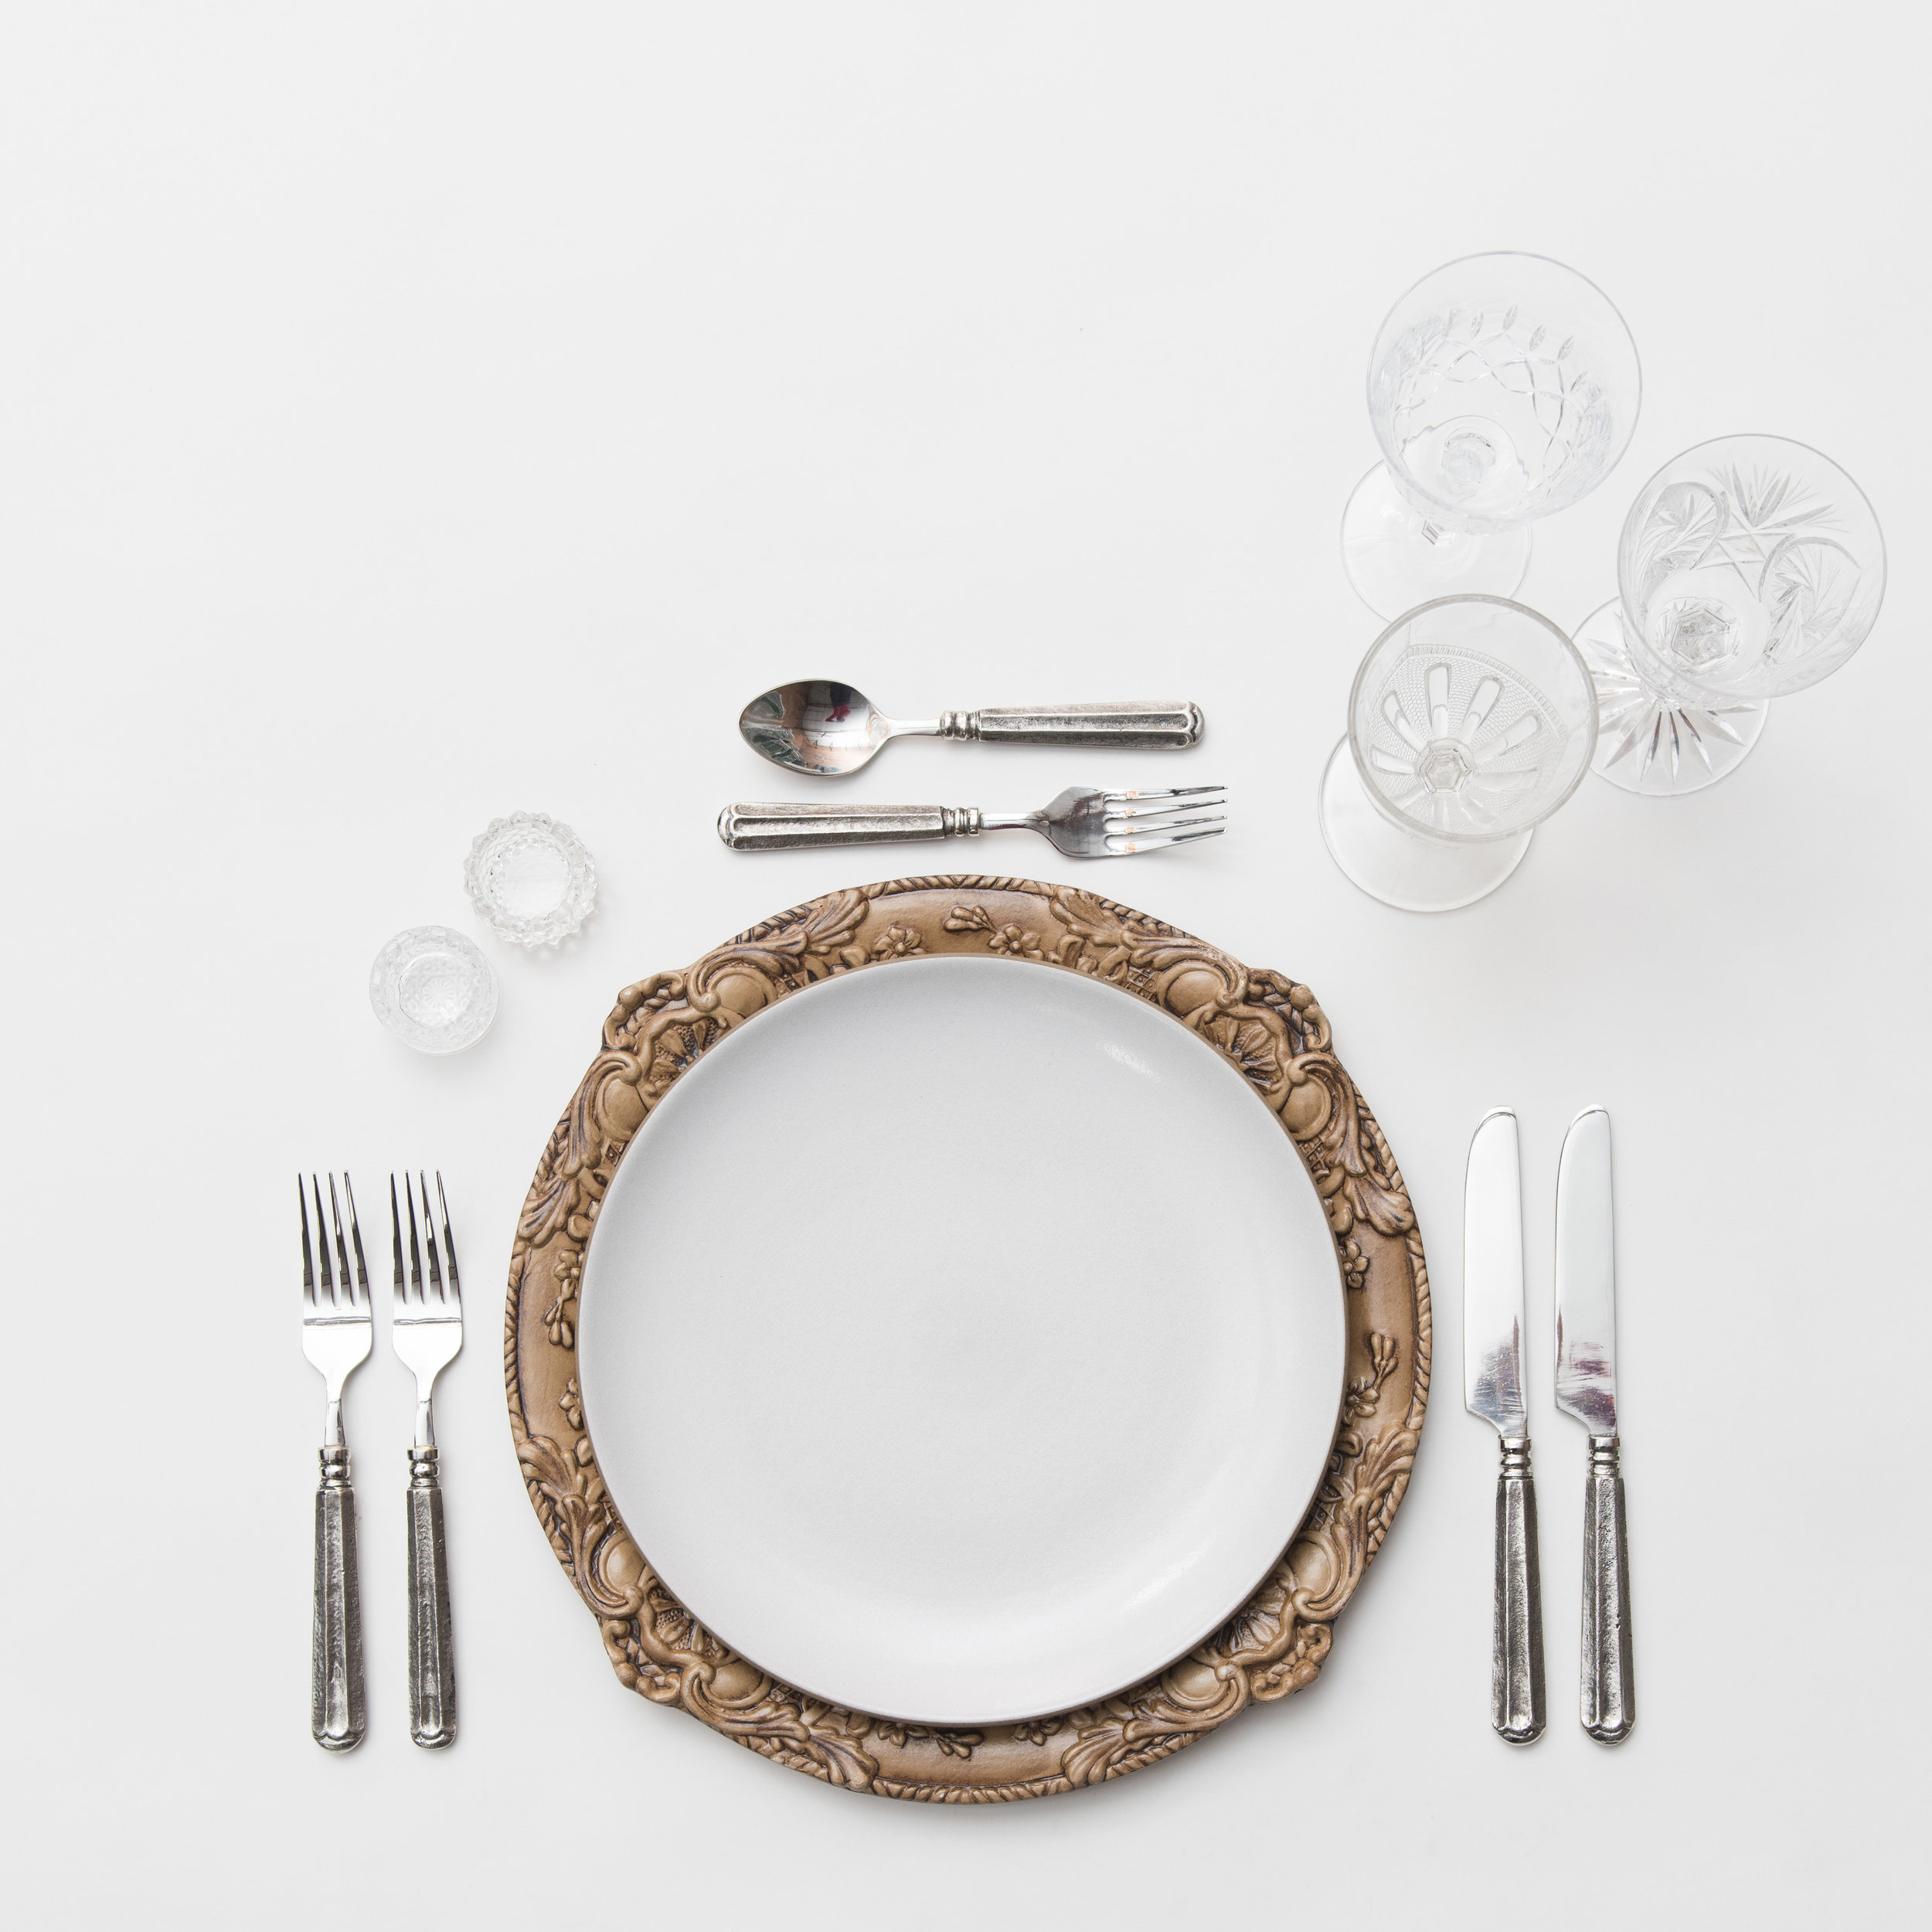 RENT: Verona Chargers in Walnut + Heath Ceramics in Opaque White + Tuscan Flatware in Pewter + Vintage Cut Crystal Goblets + Early American Pressed Glass Goblets + Antique Crystal Salt Cellars  SHOP:Verona Chargers in Walnut